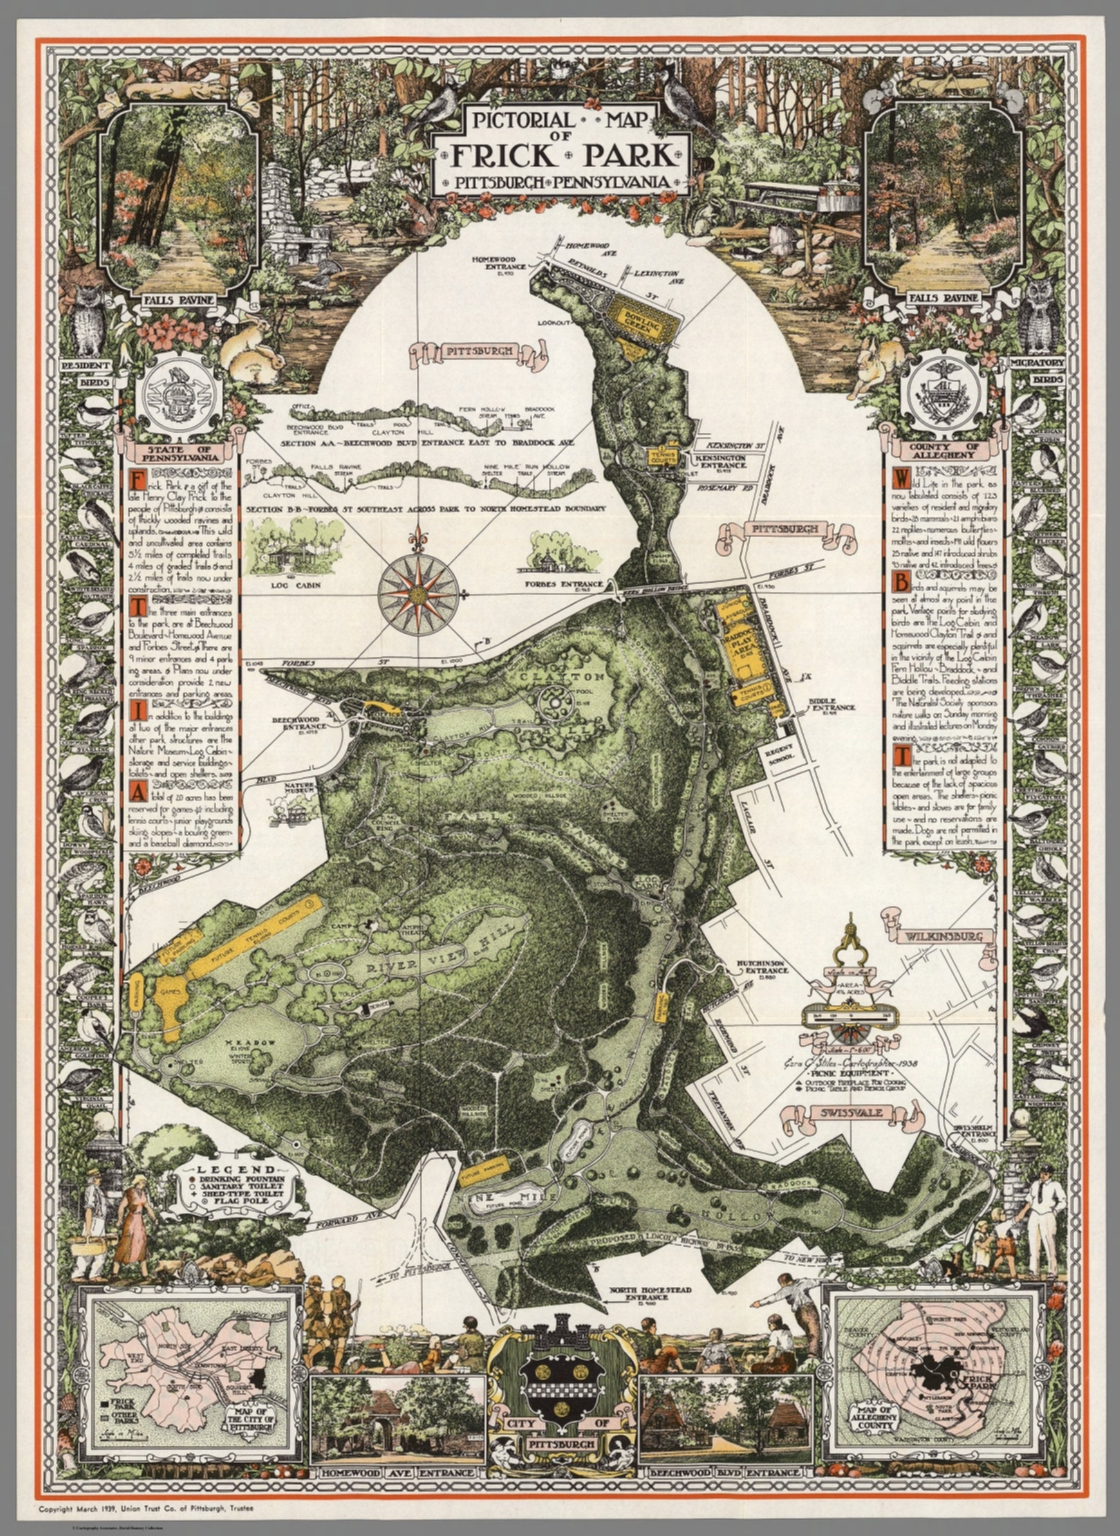 Pictorial Map of Frick Park, Pittsburgh, Pennsylvania ...